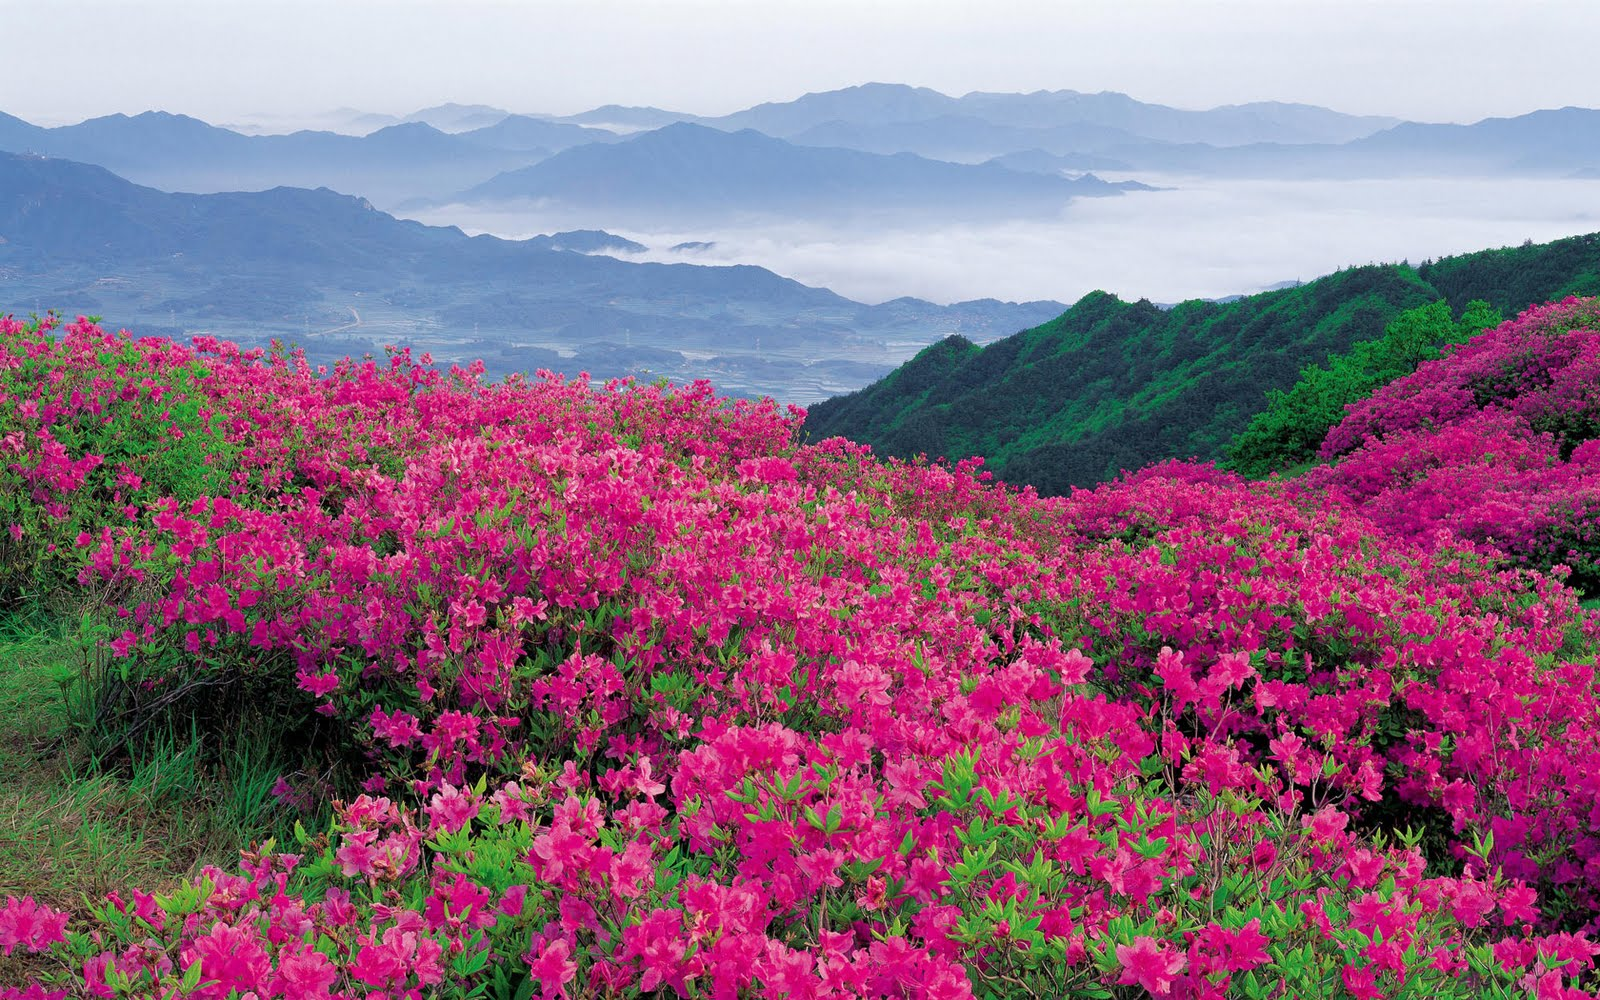 pink-flowers-landscape-wallpaper-1920x1200